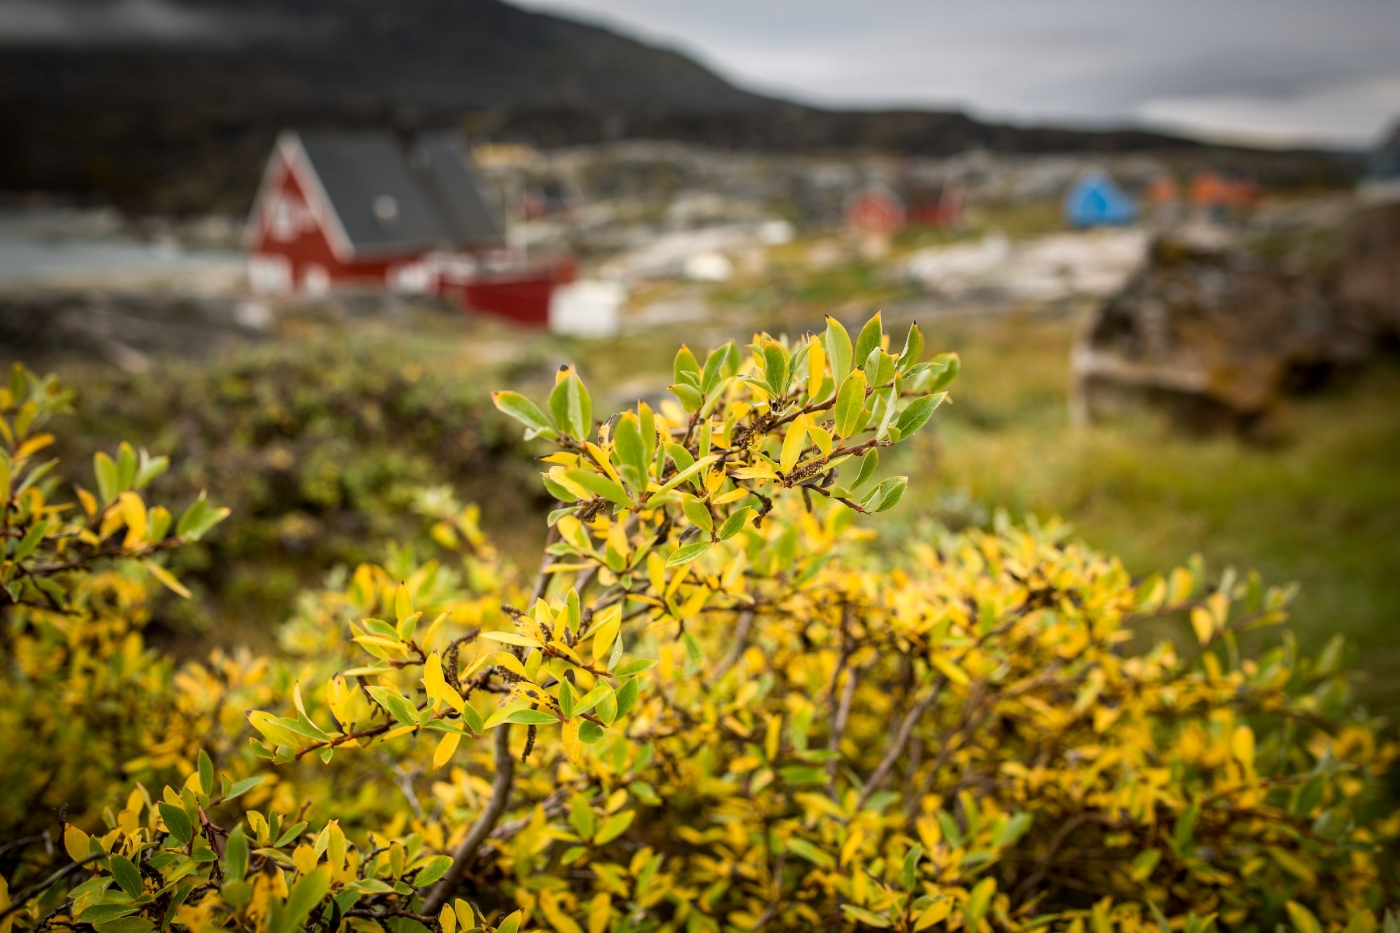 Autumn colours in Oqaatsut in the Disko Bay in Greenland. By Mads Pihl